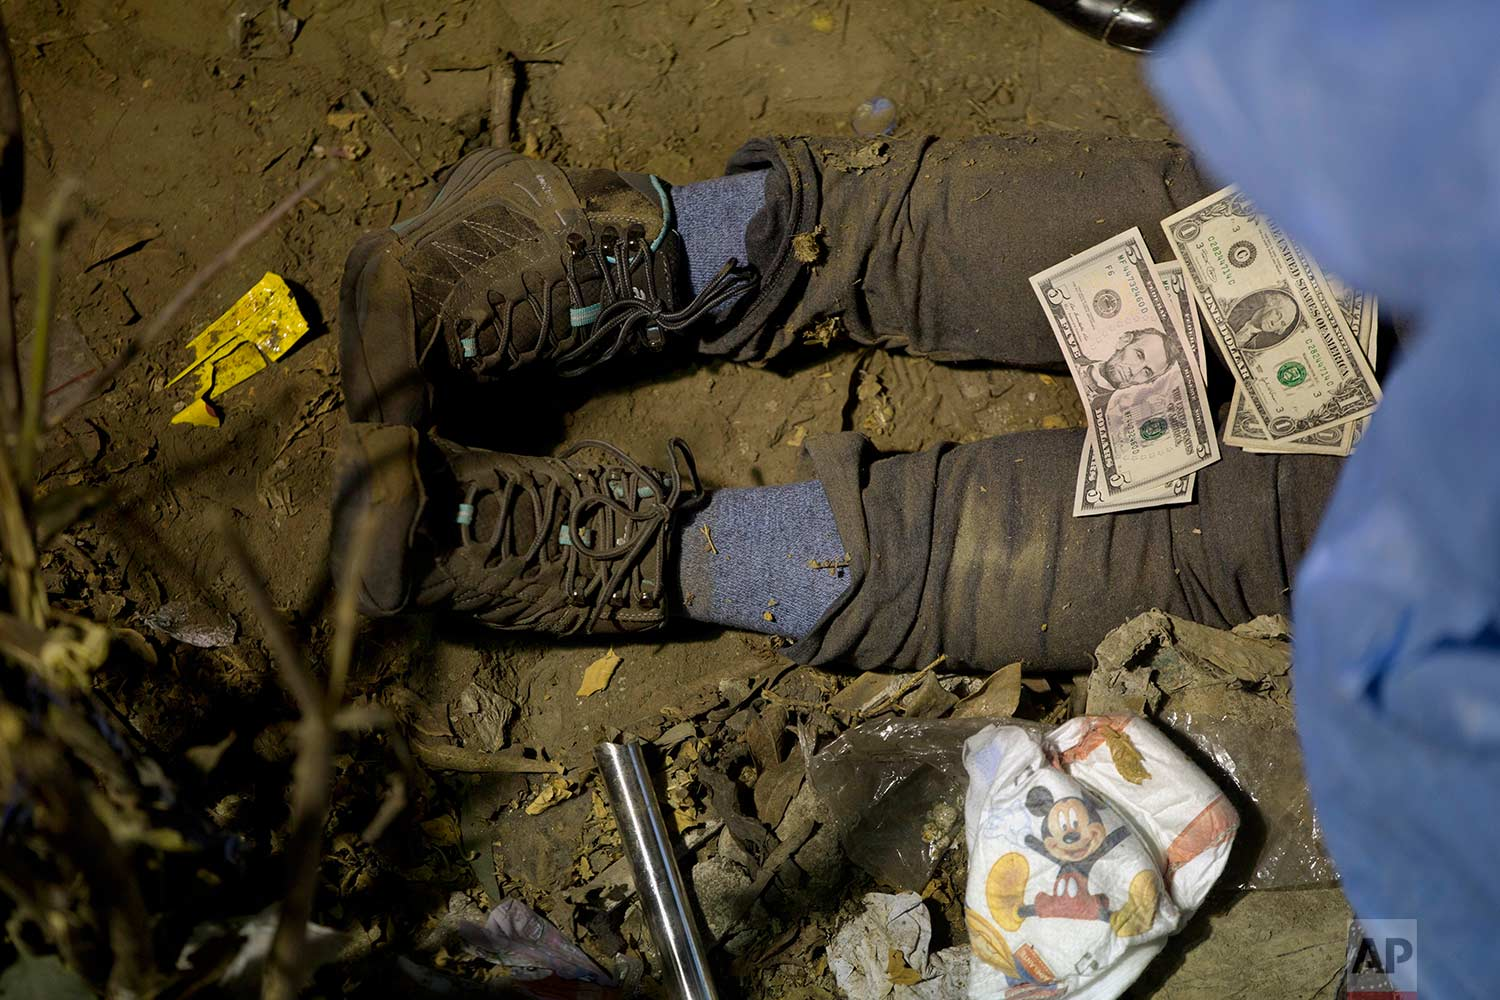 Bills of U.S. dollars are placed over the body of a tourist after they were found in pockets of her clothes as rescue workers and policemen work the scene of a deadly bus accident in Lima, Peru, Sunday, July 9, 2017. (AP Photo/Rodrigo Abd)